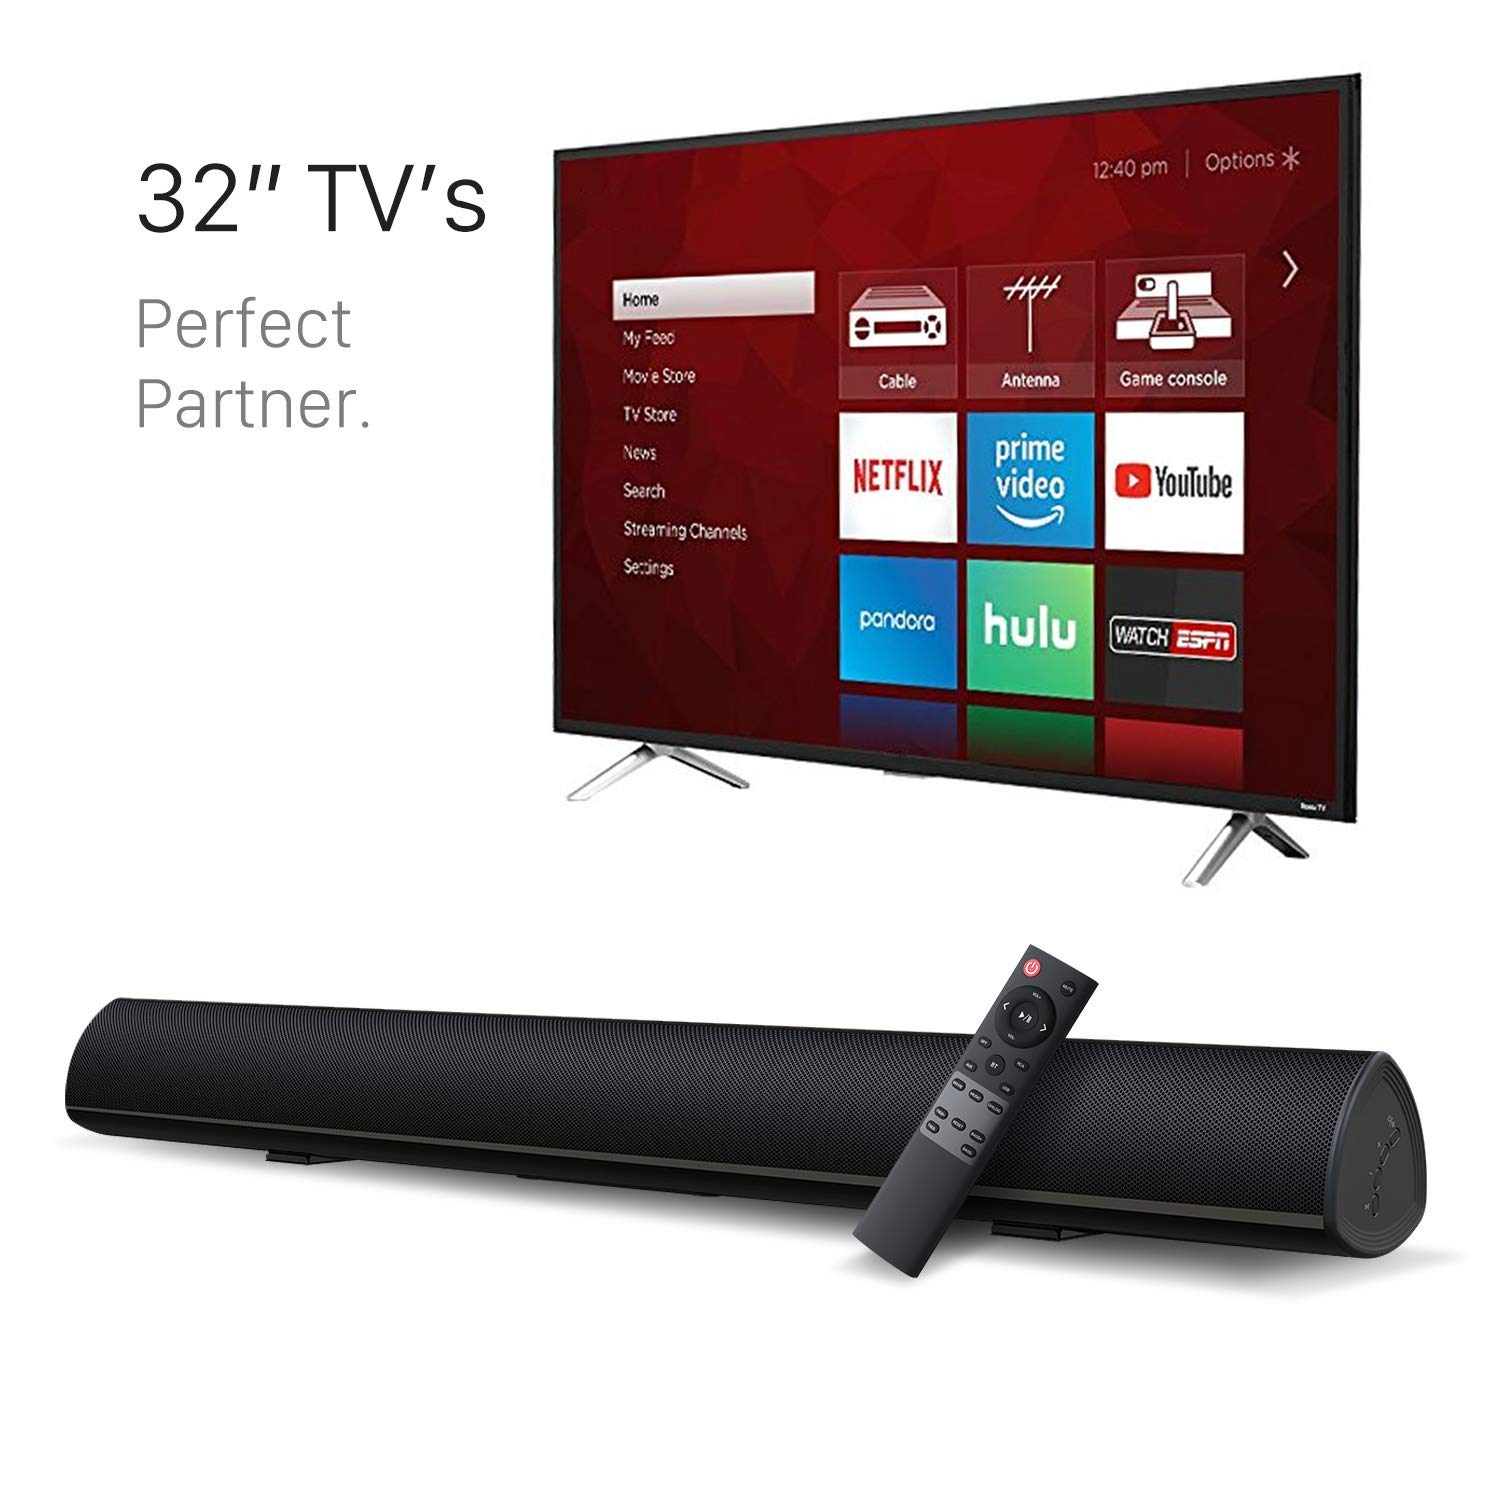 BYL Sound Bar Wireless Bluetooth and Wired Soundbar Speaker System(28'', Optical Cable Included, 3D Sound System, Remote Control with Learning Function, Wall Mountable) Updated Version by BYL